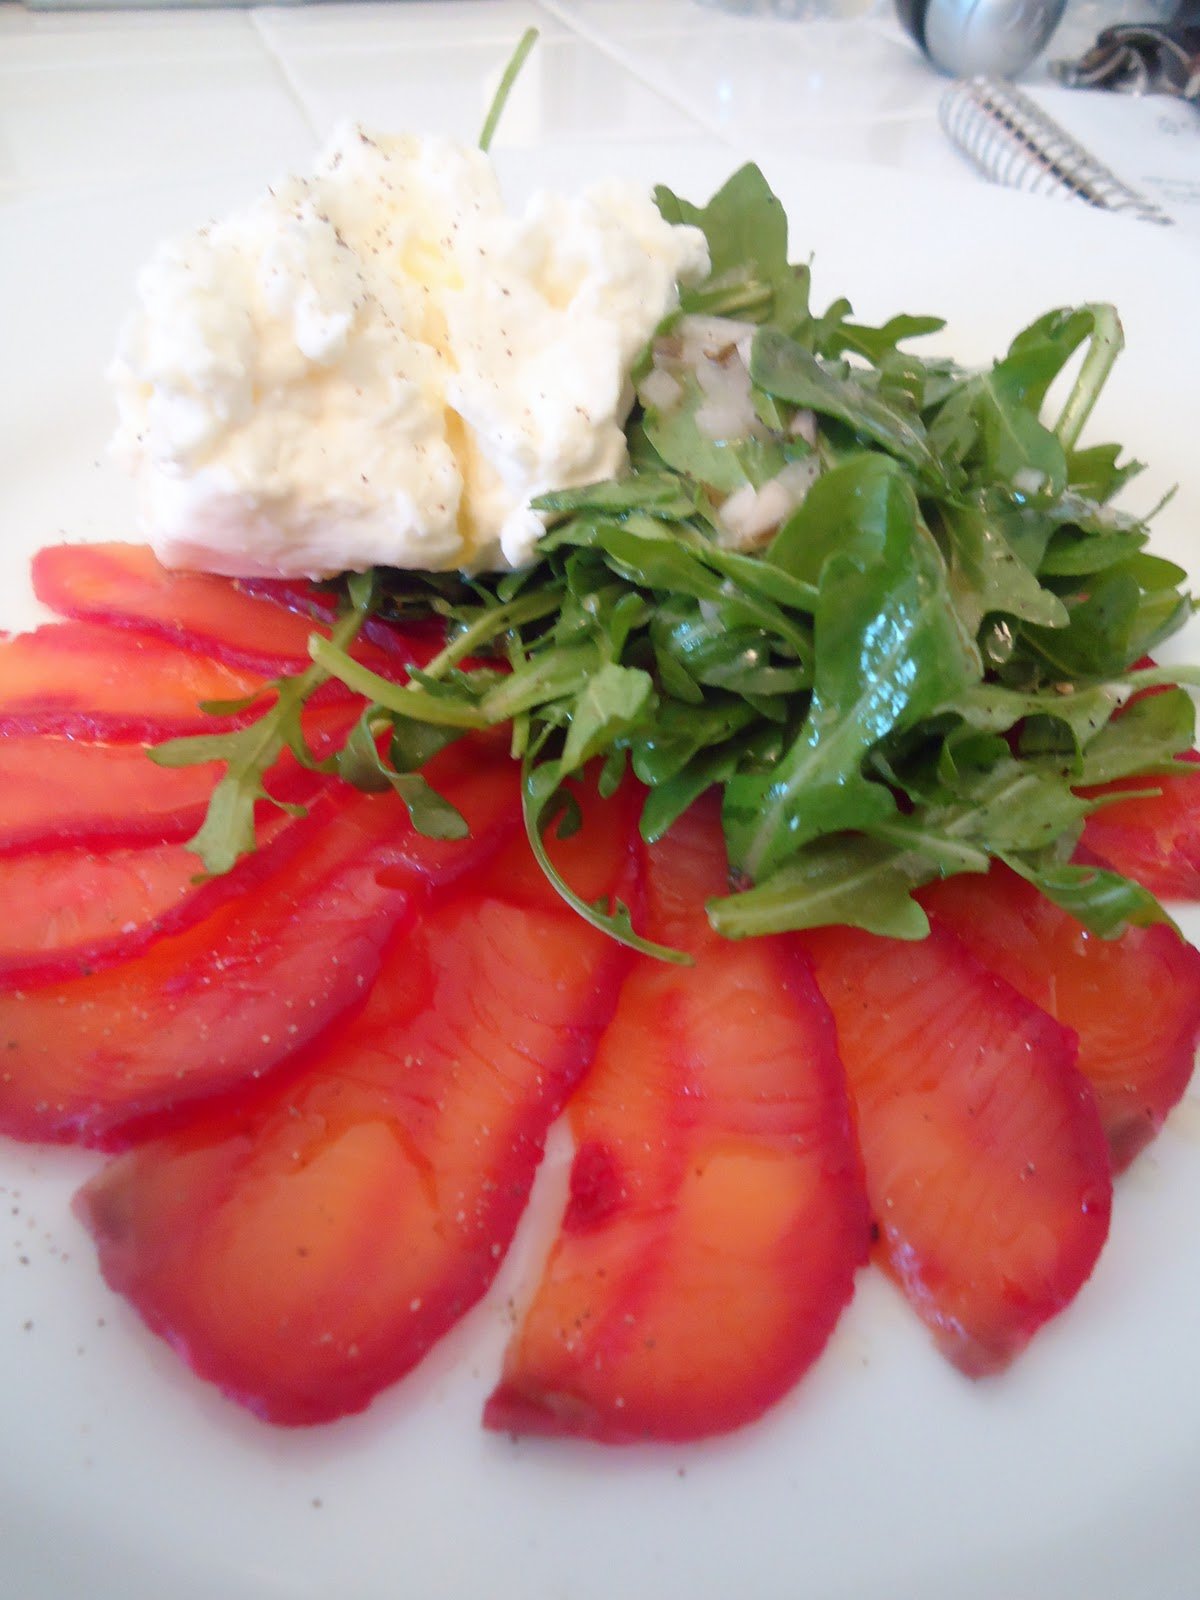 FIVE O'CLOCK FOOD: Beet Cured Salmon Gravlax with Wild Arugula Salad